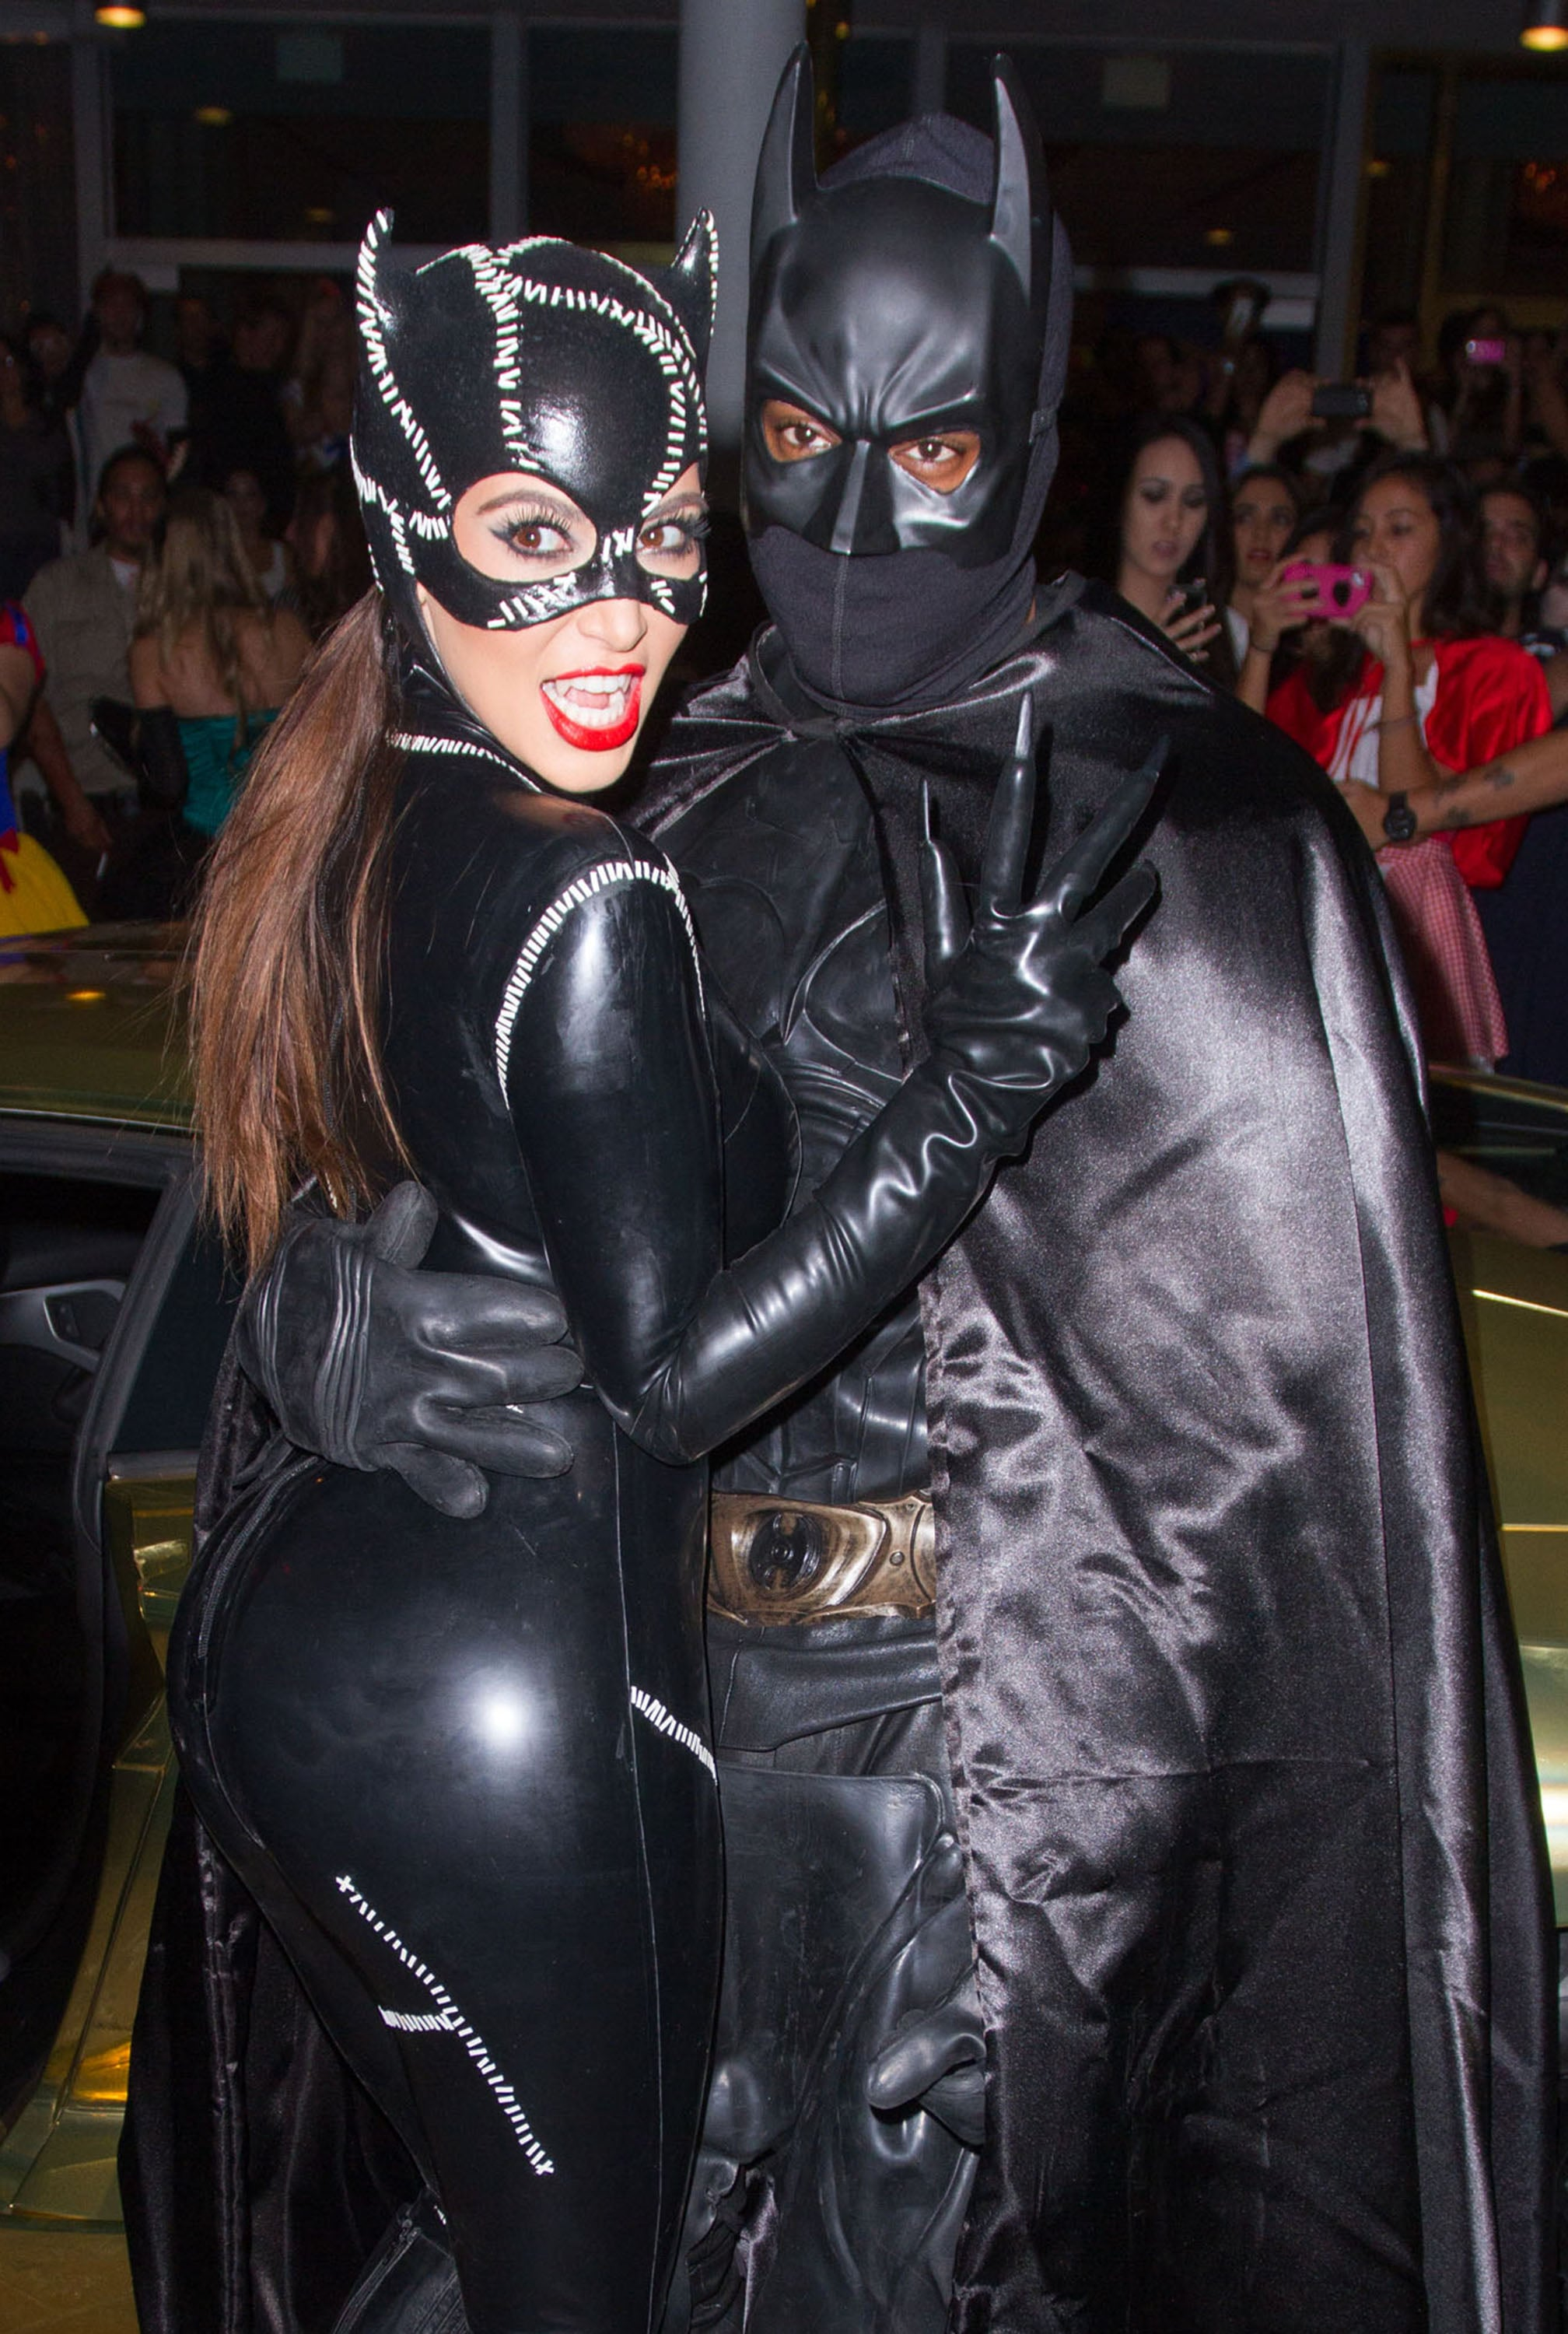 The pair dressed up as Batman and Catwoman for Halloween 2012 in Miami.